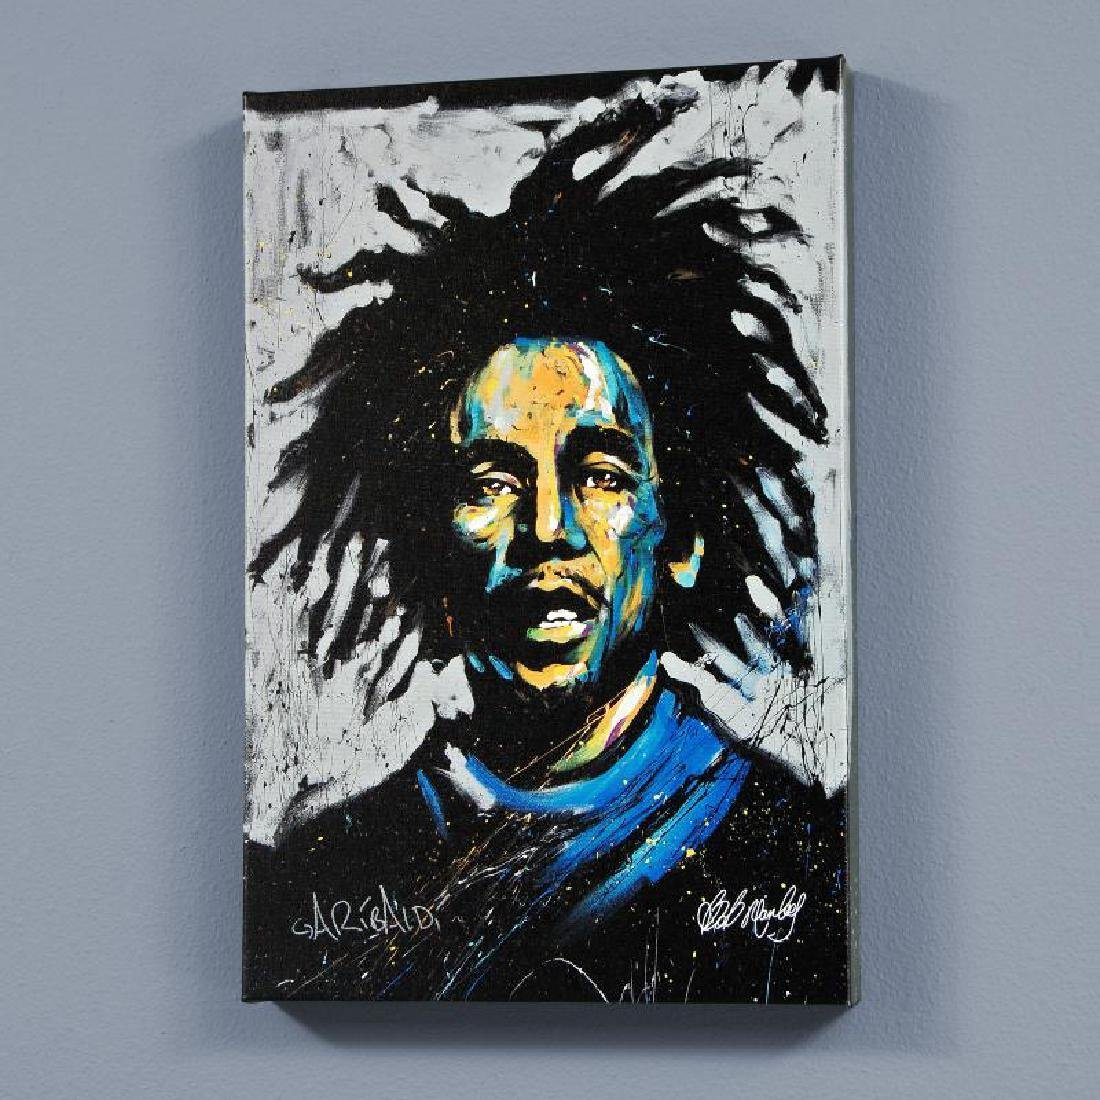 """Bob Marley (Redemption)"" LIMITED EDITION Giclee on"